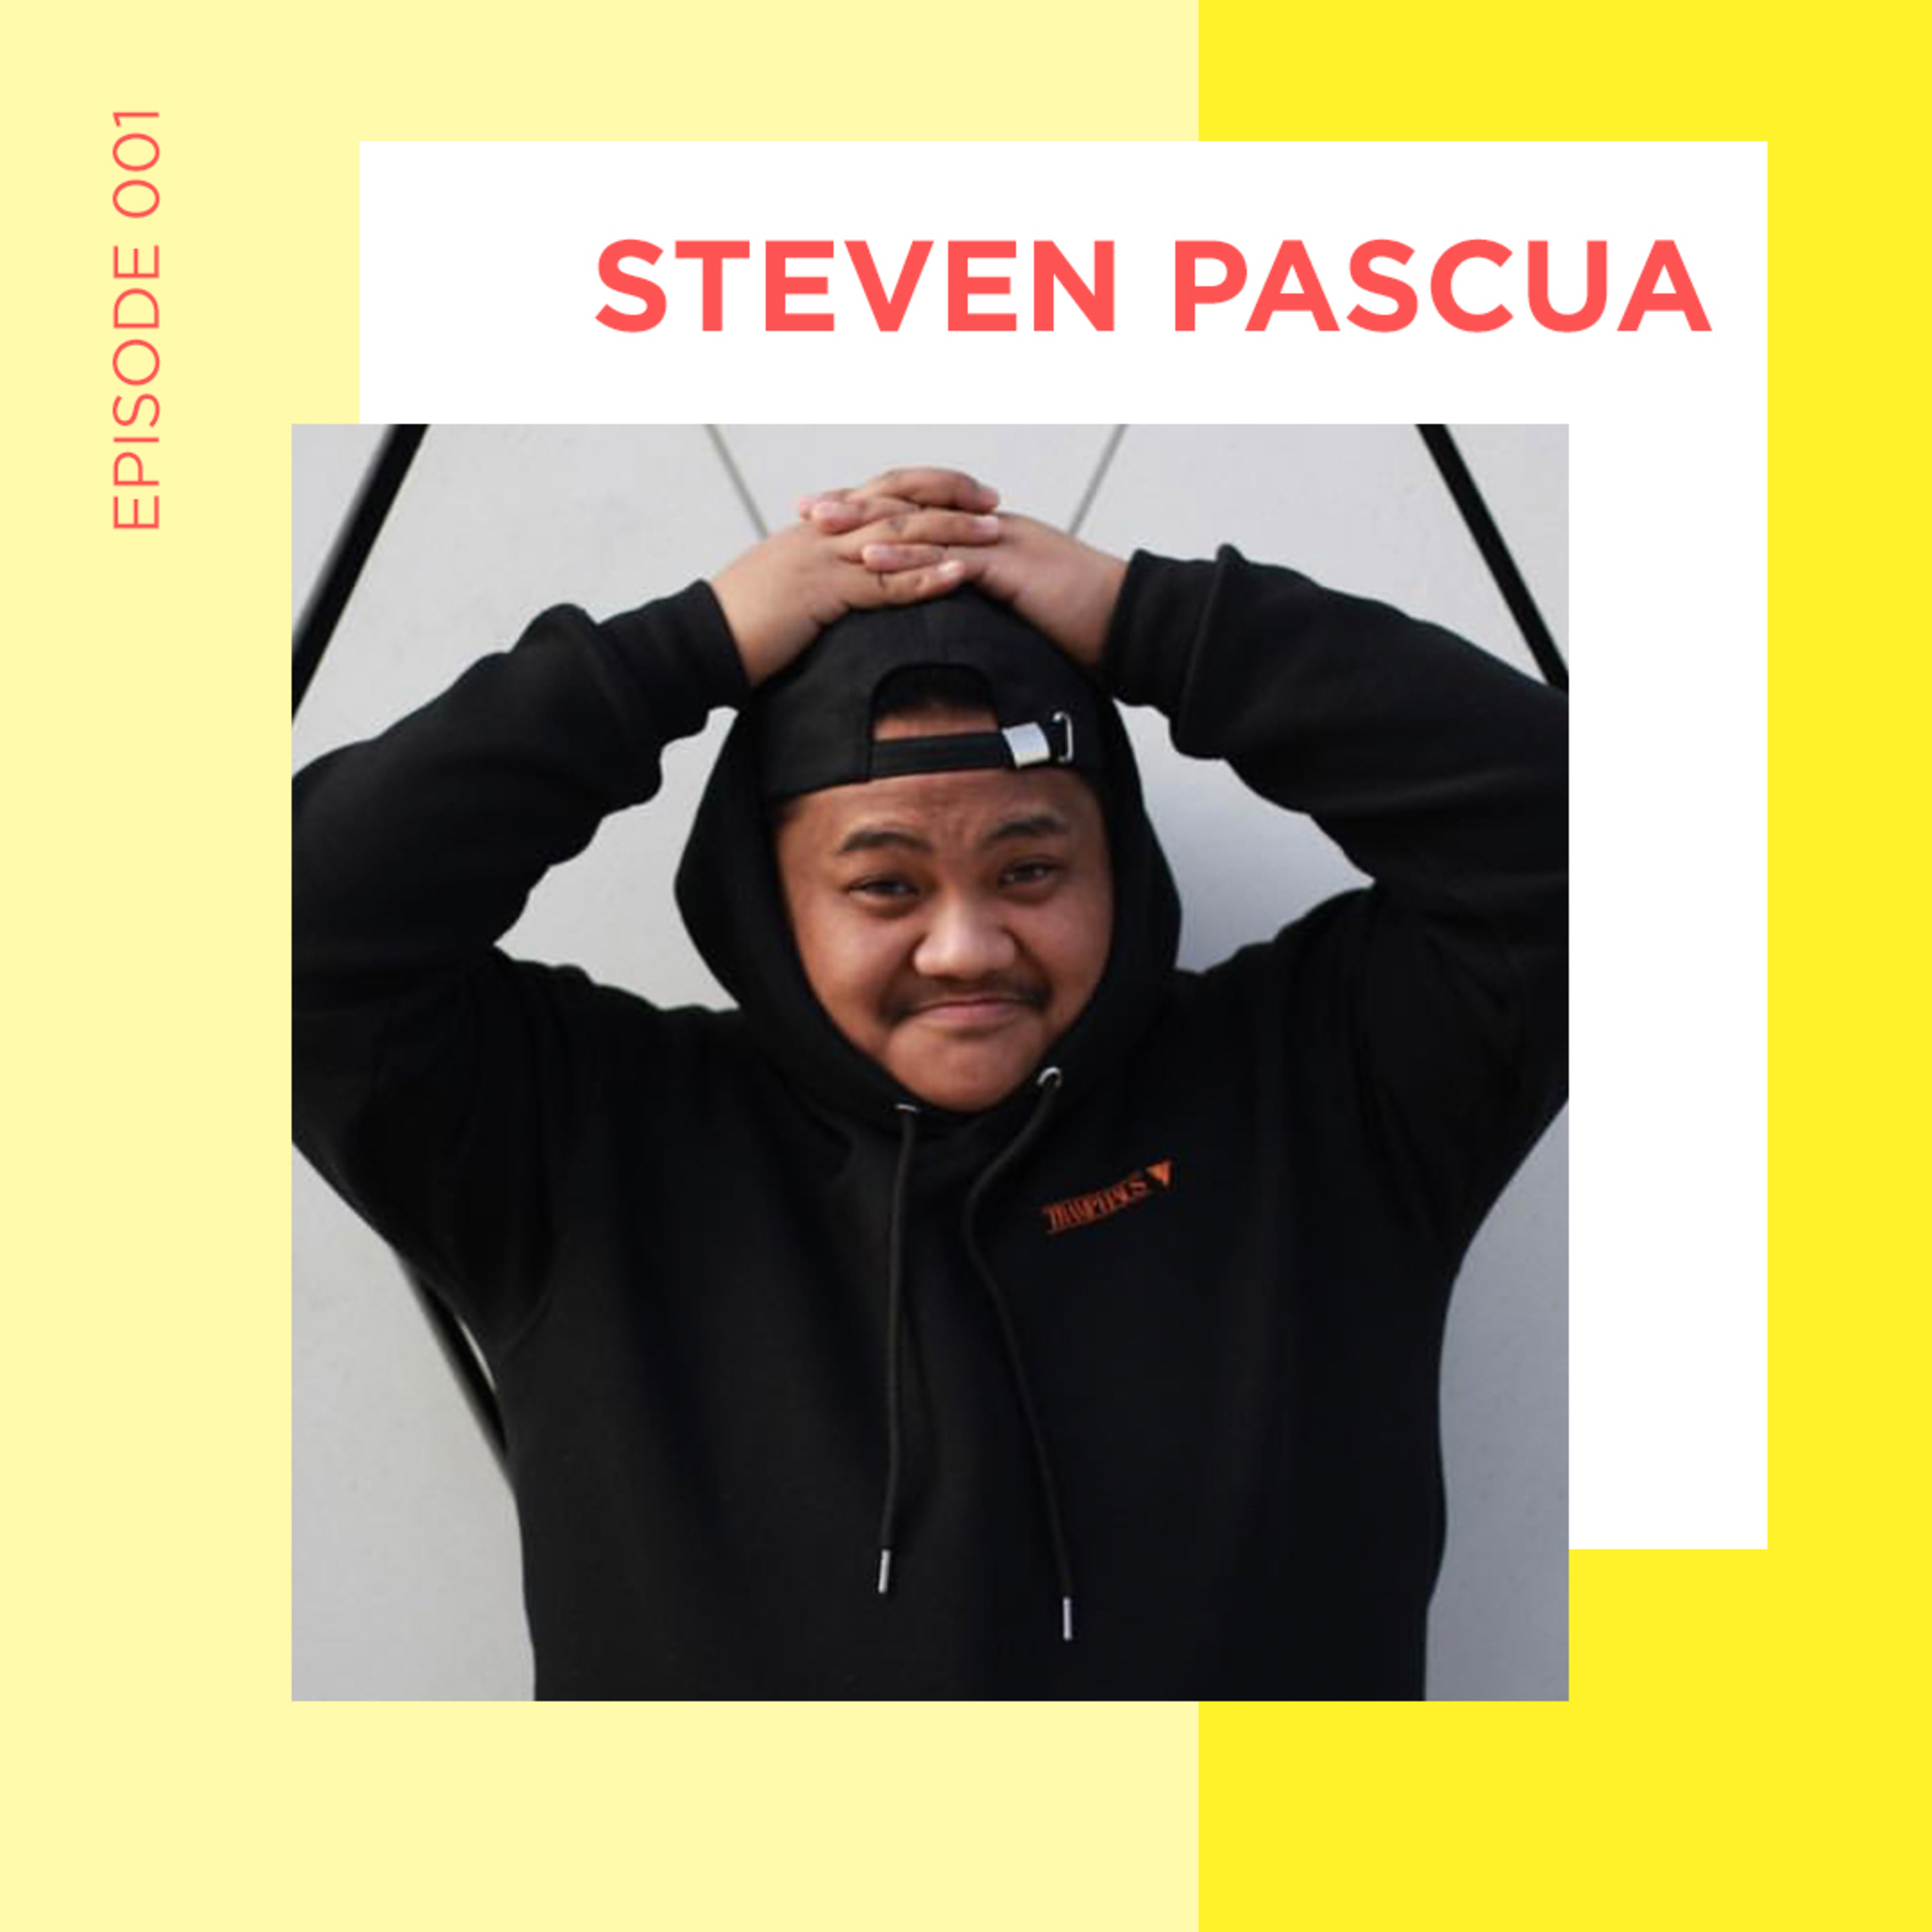 EP 1 - I Made Will Smith Laugh with Steven Pascua